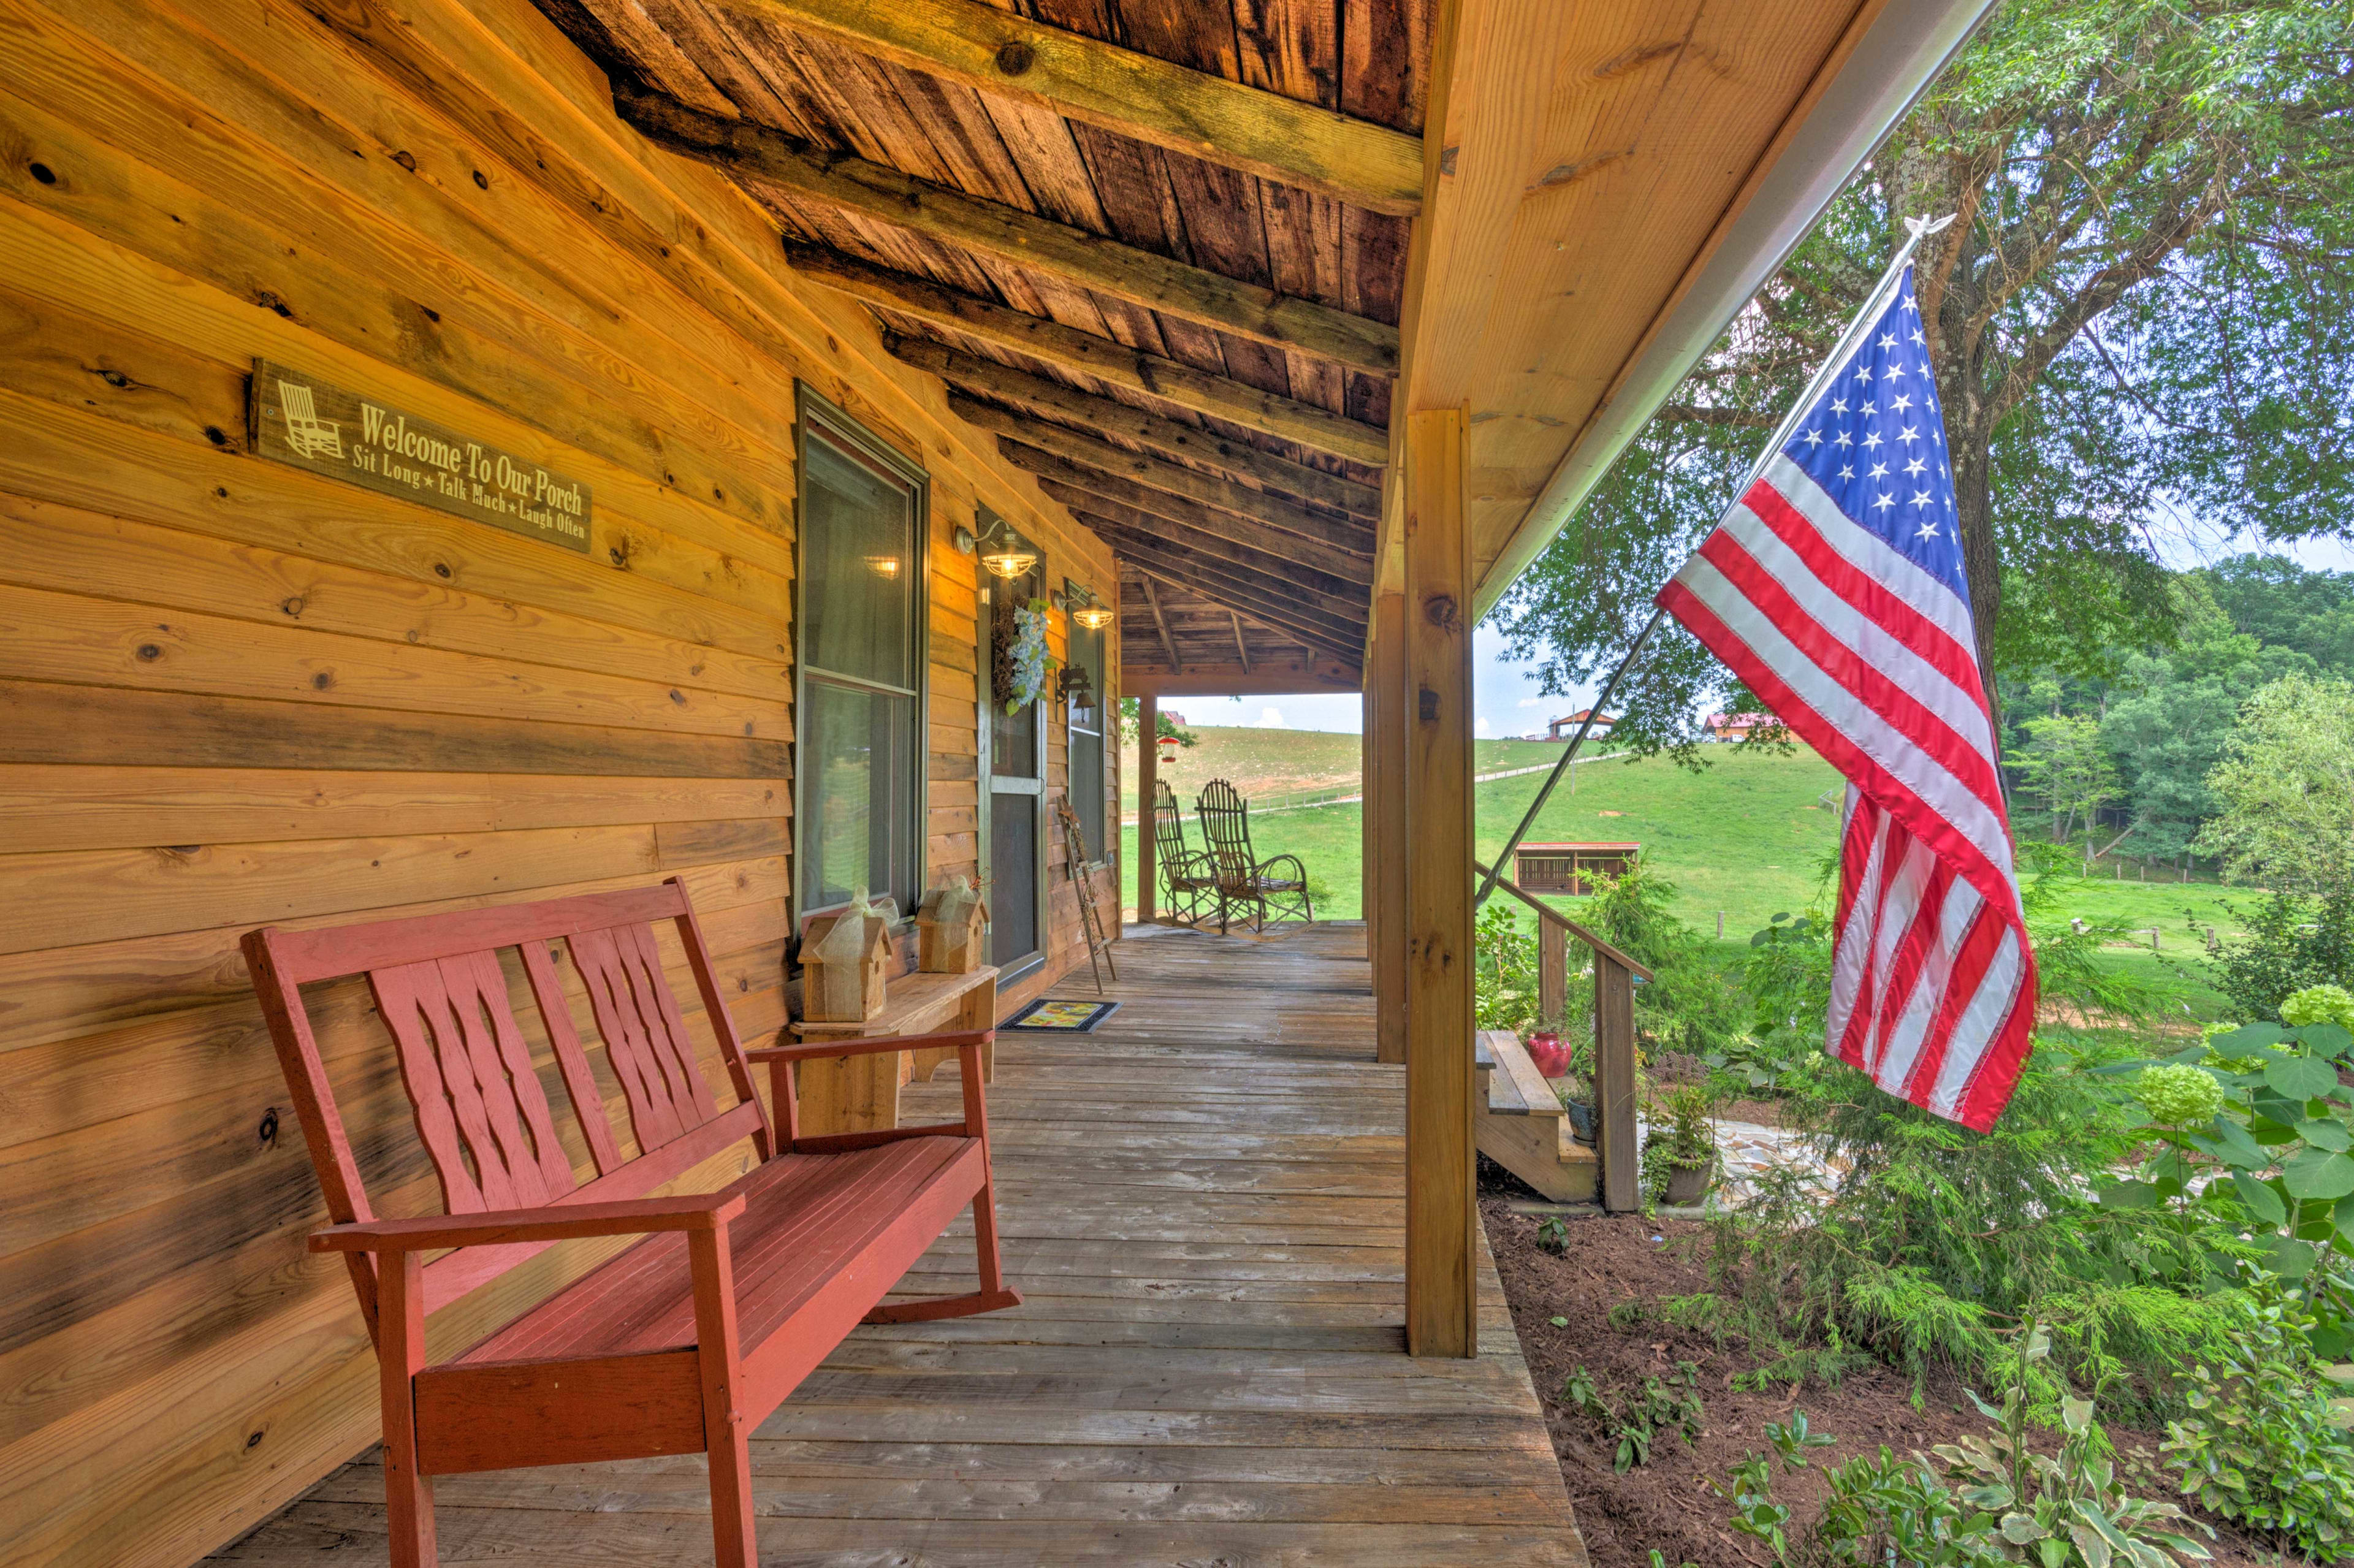 Sip your morning coffee on the front porch.